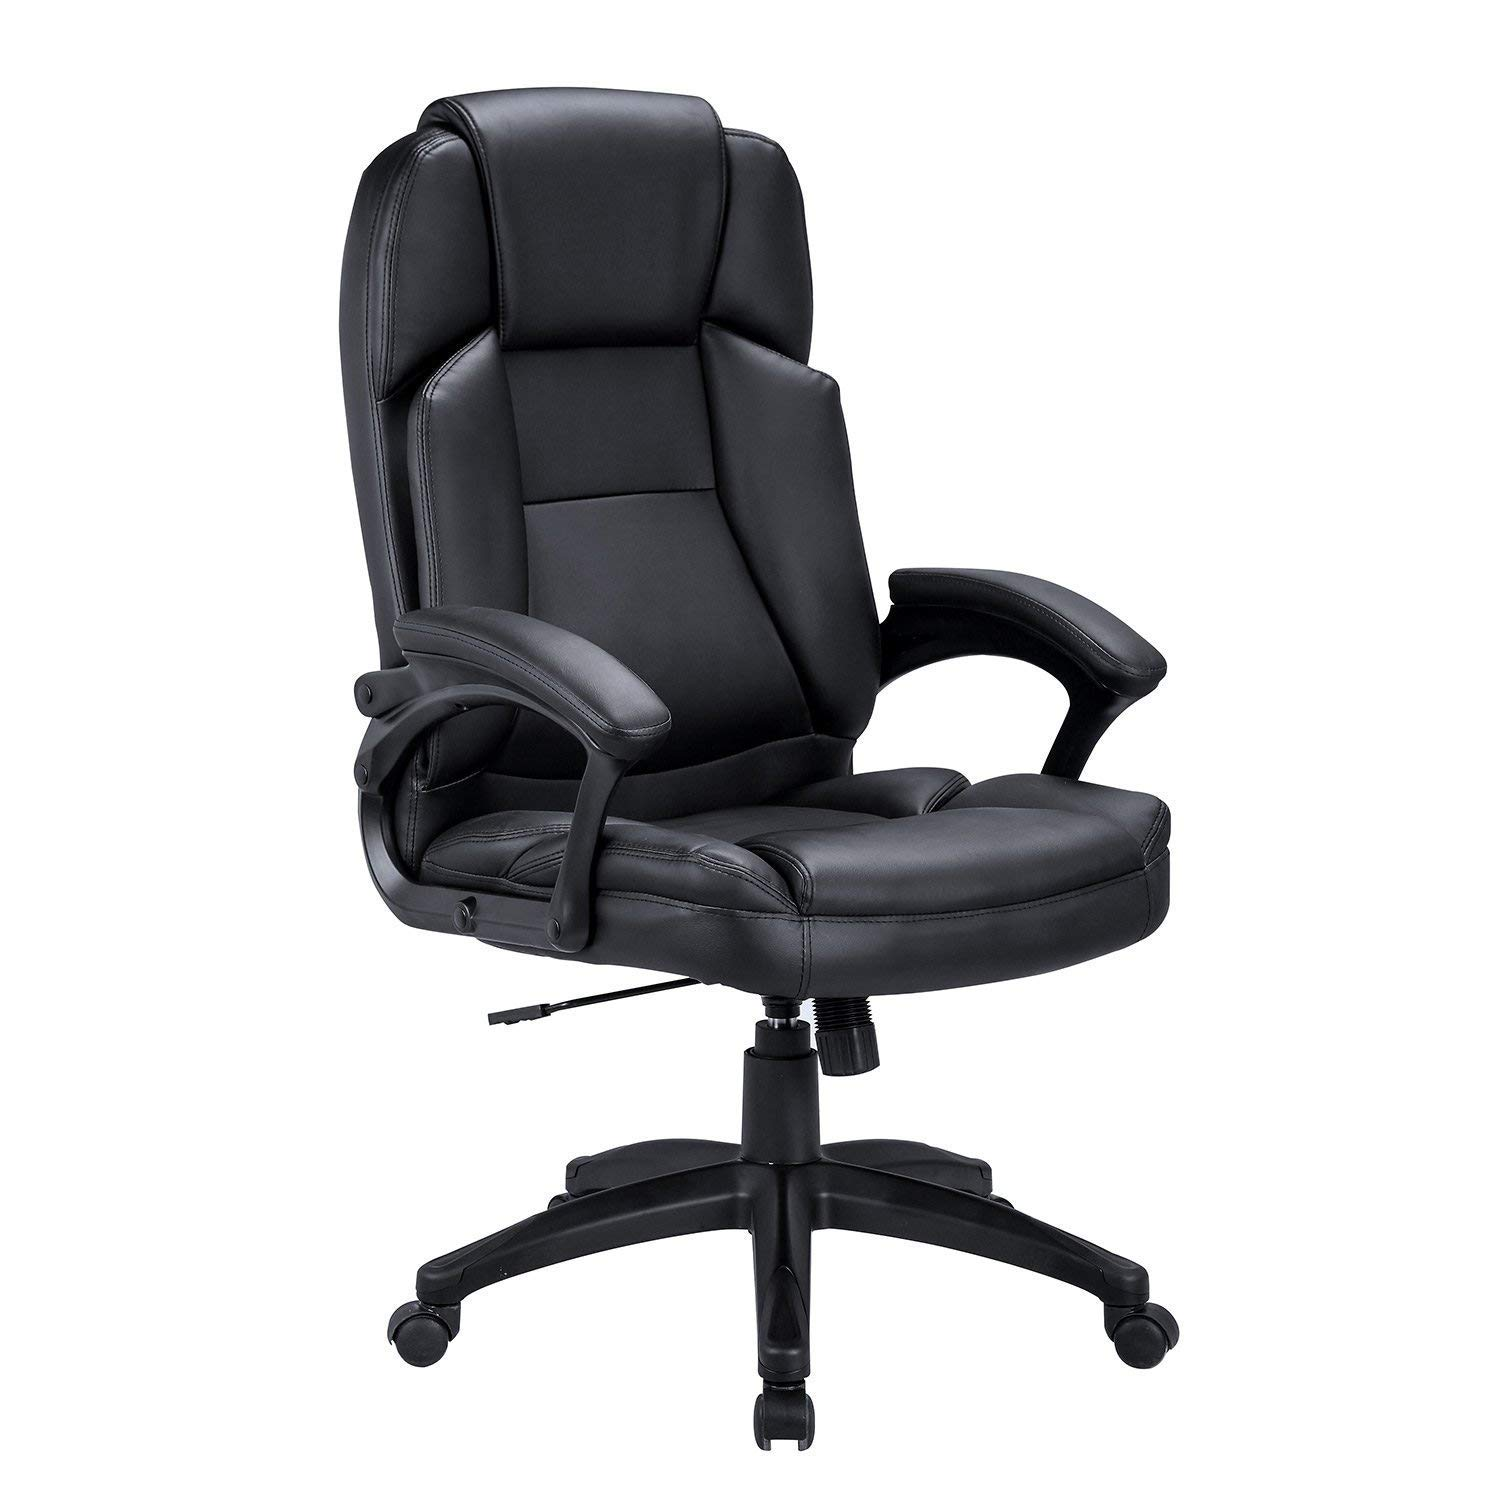 LCH High Back Executive Office Chair with Adjustable Tilt Angle - PU Leather Computer Desk Chair with Thick Padding for Comfort and Ergonomic Design for Lumbar Support